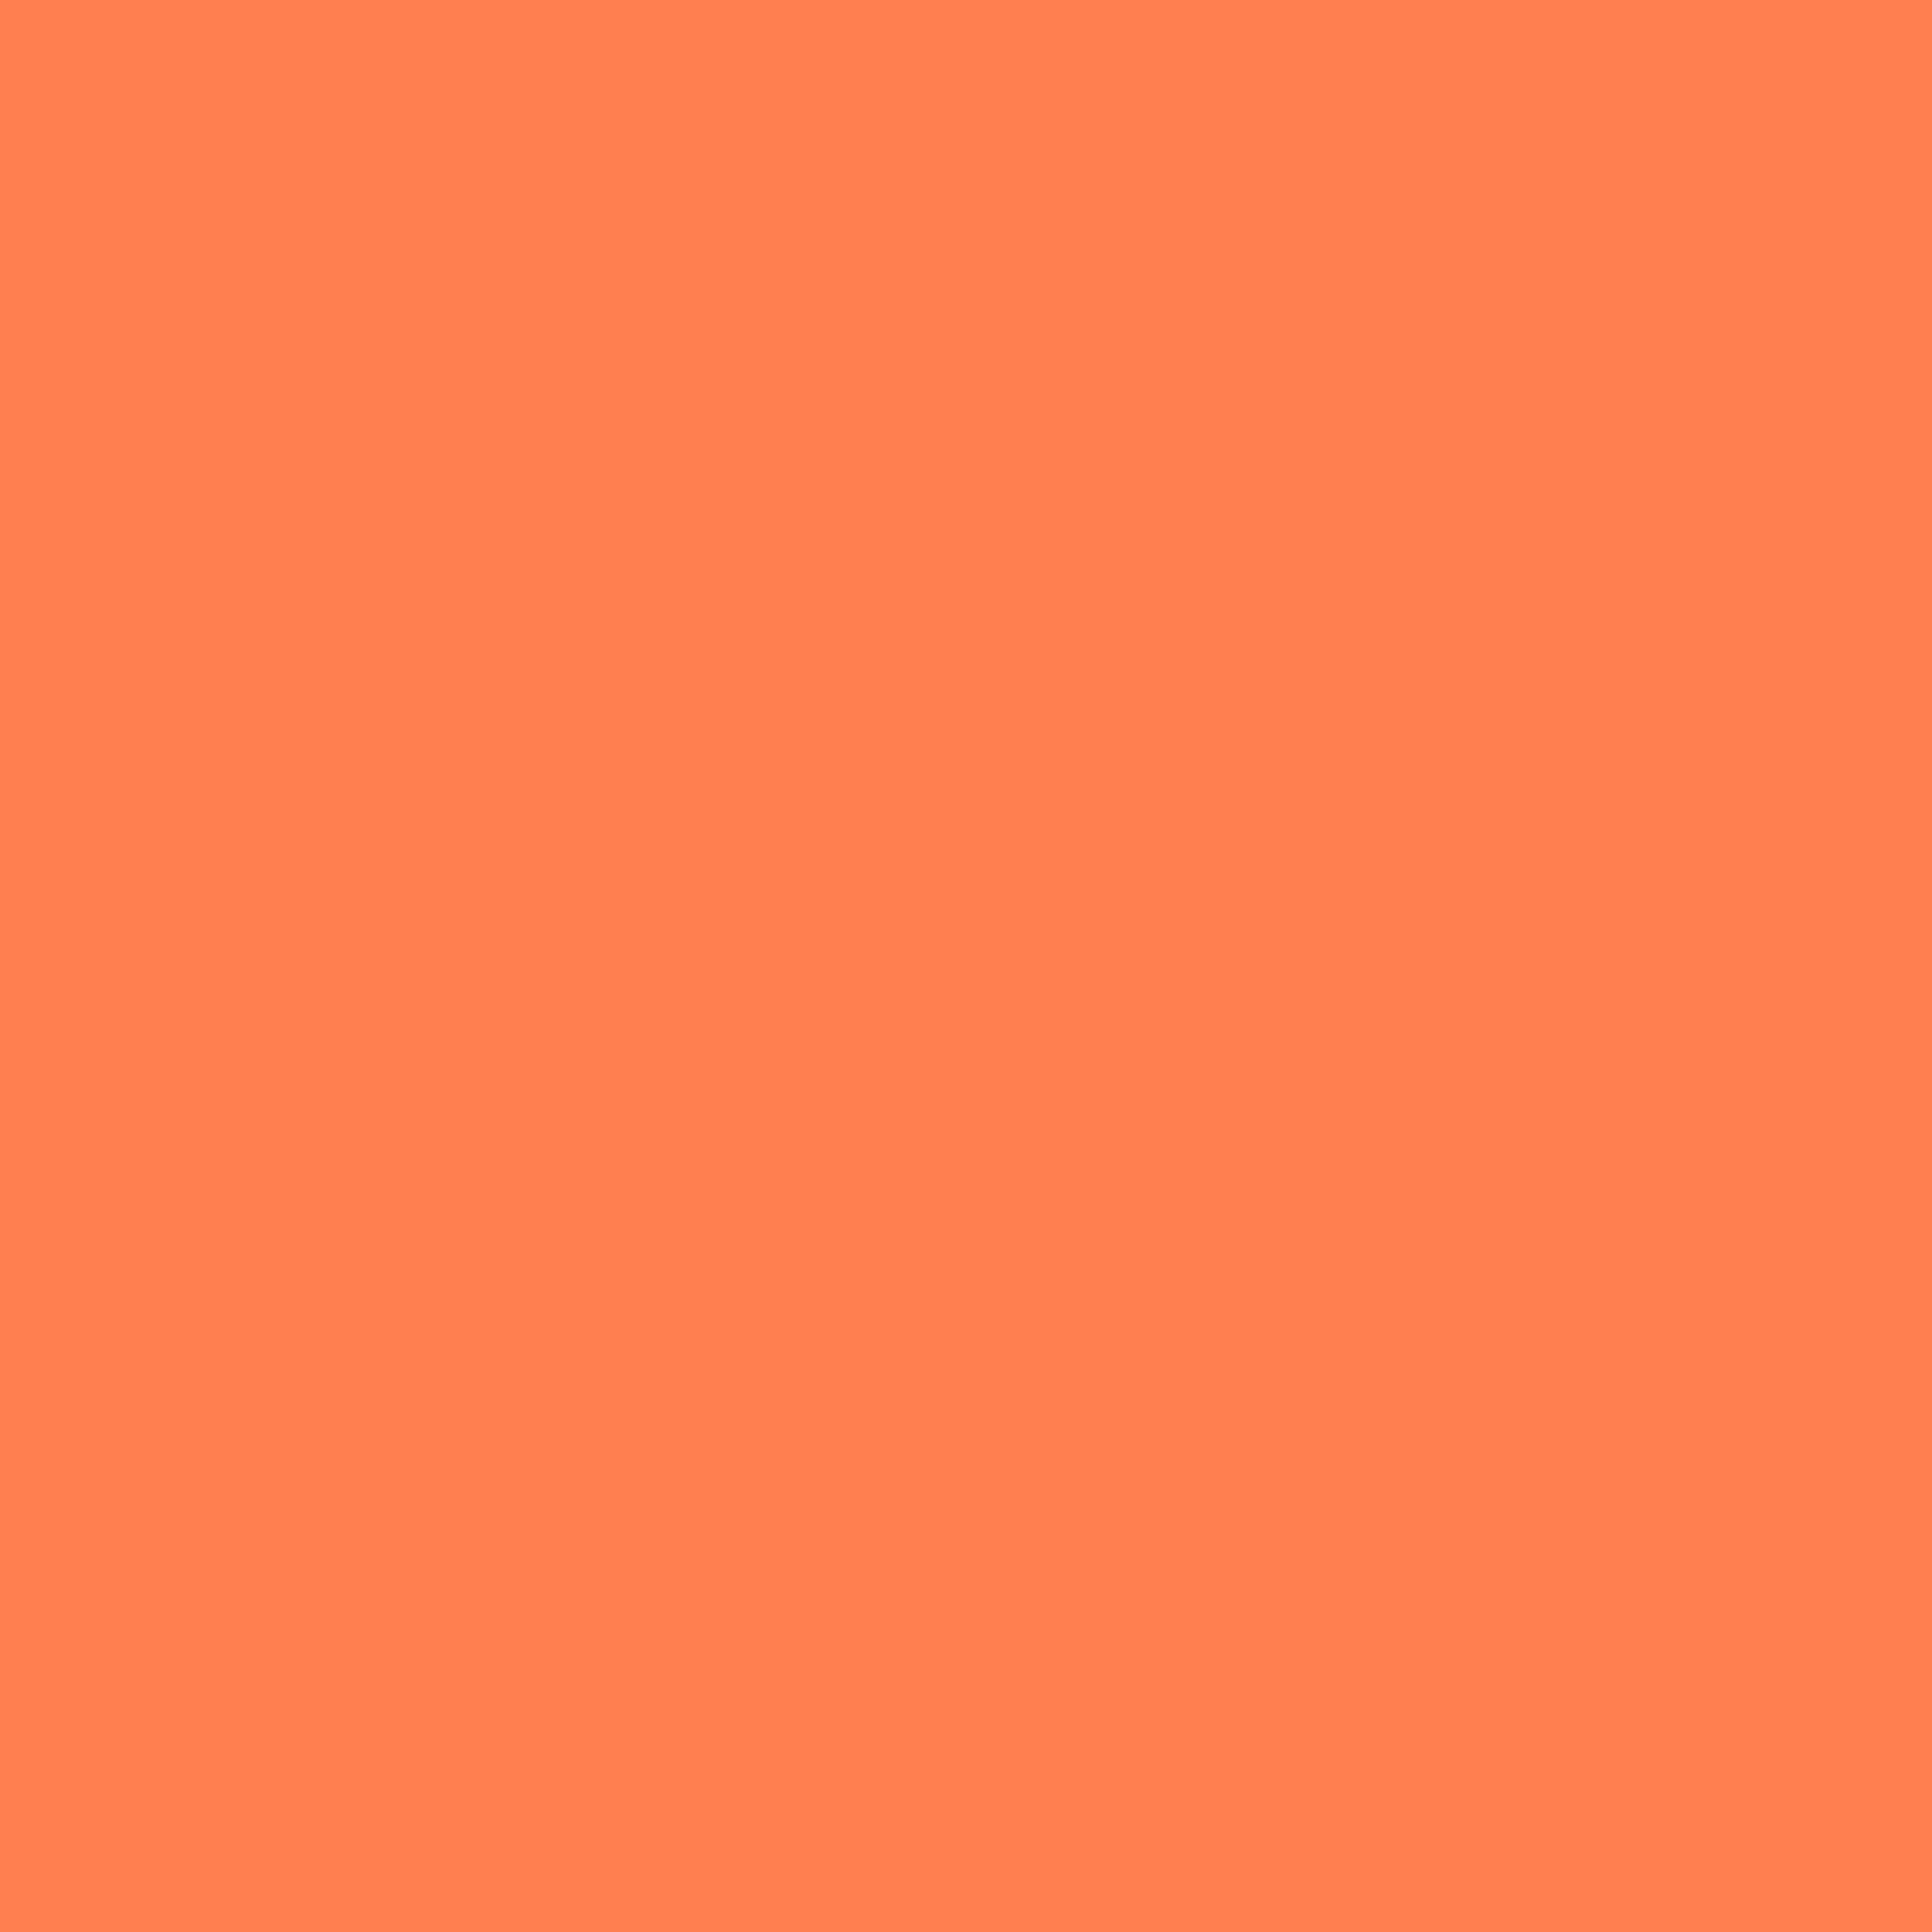 2048x2048 Coral Solid Color Background